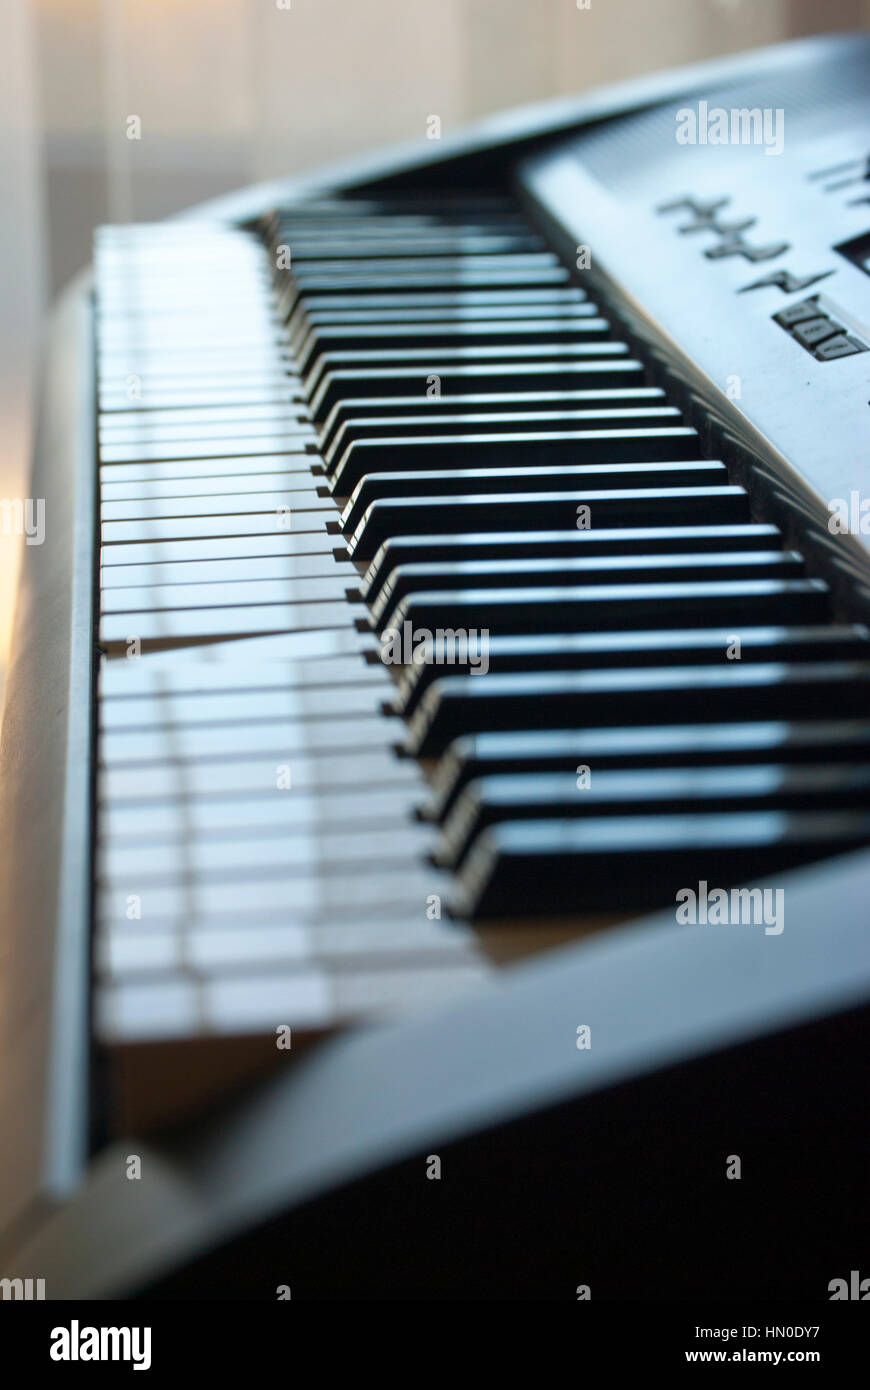 #Piano in the light - Stock Image